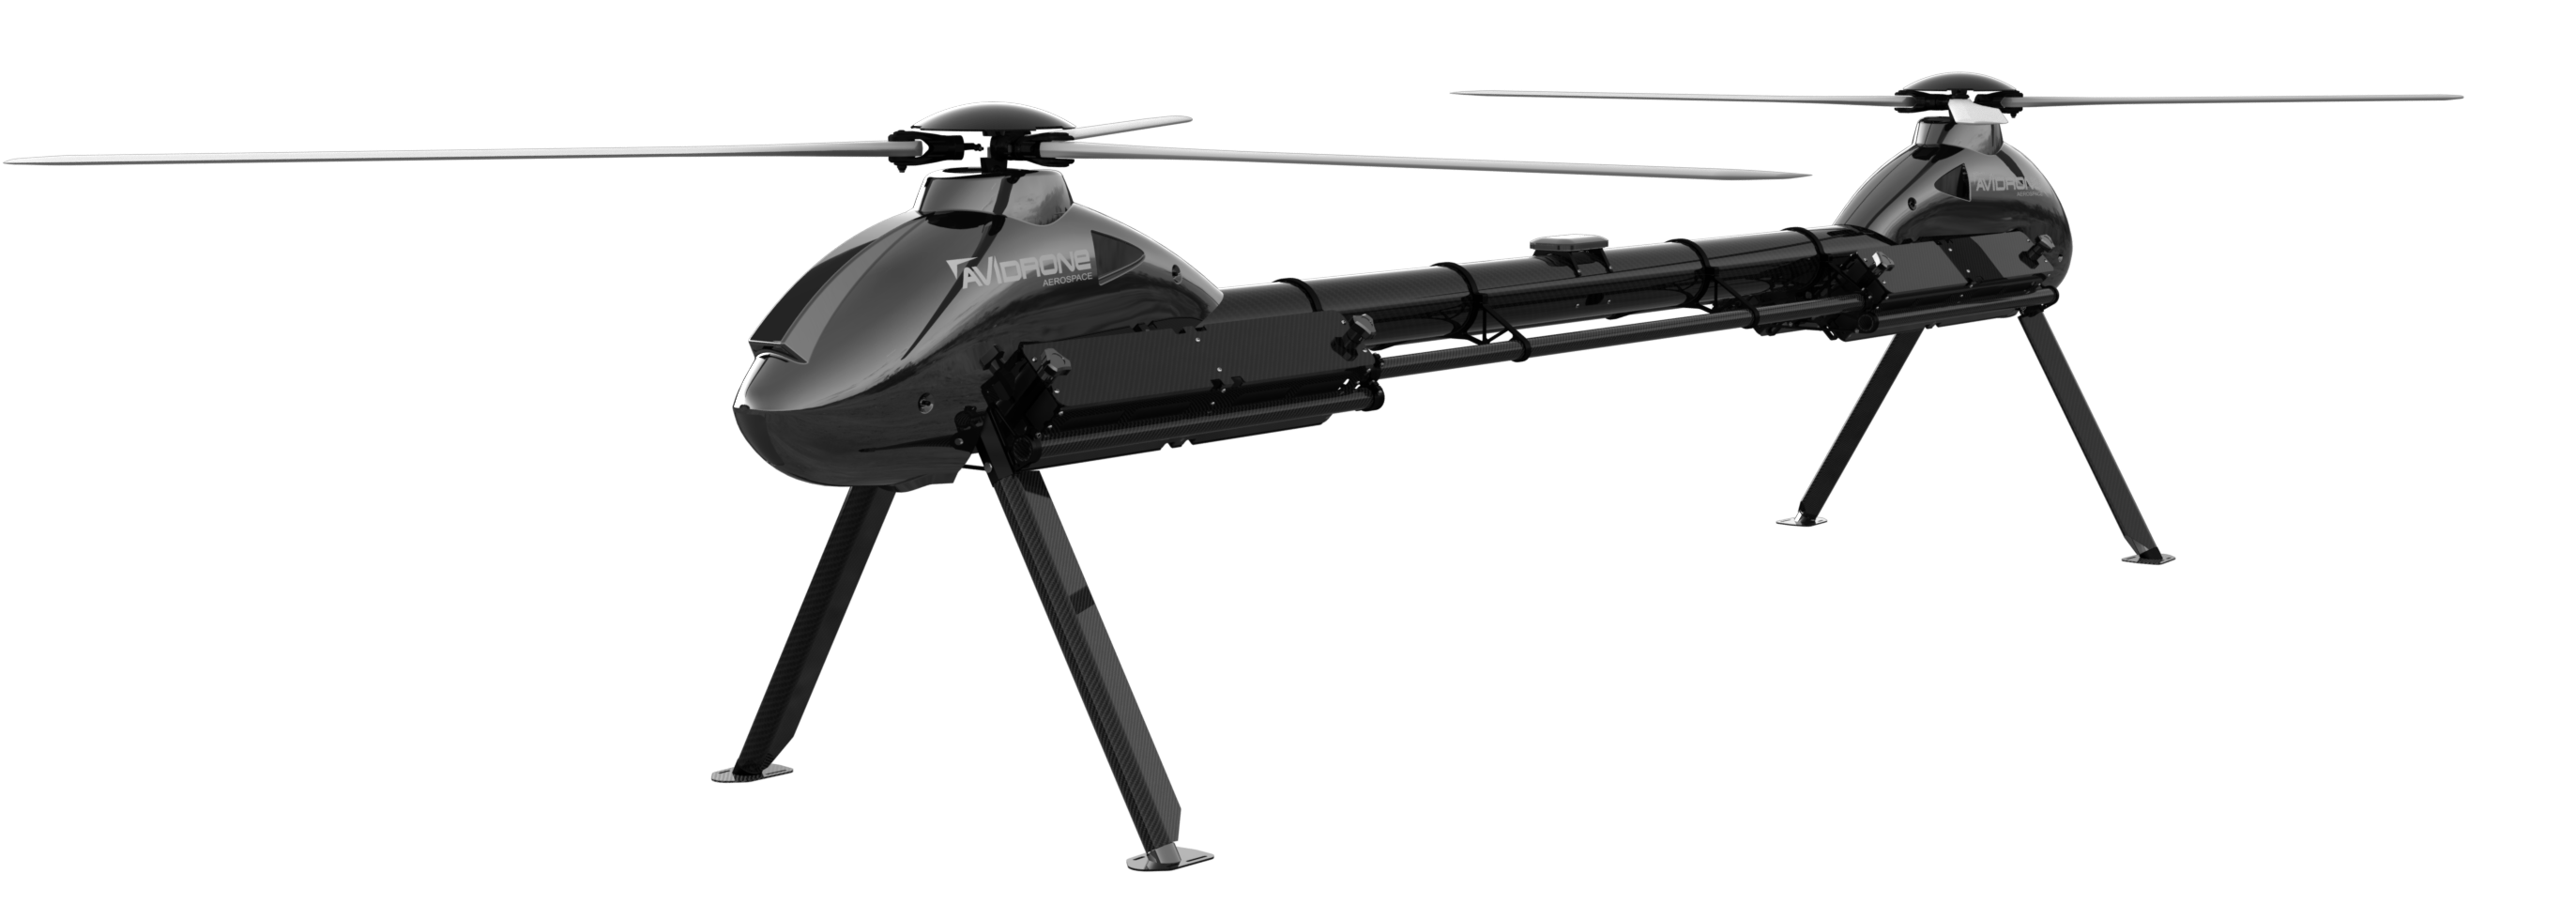 https://www.avidroneaerospace.com/wp-content/uploads/2019/04/210TL-STOCK-ISO-Realistic-Render.png